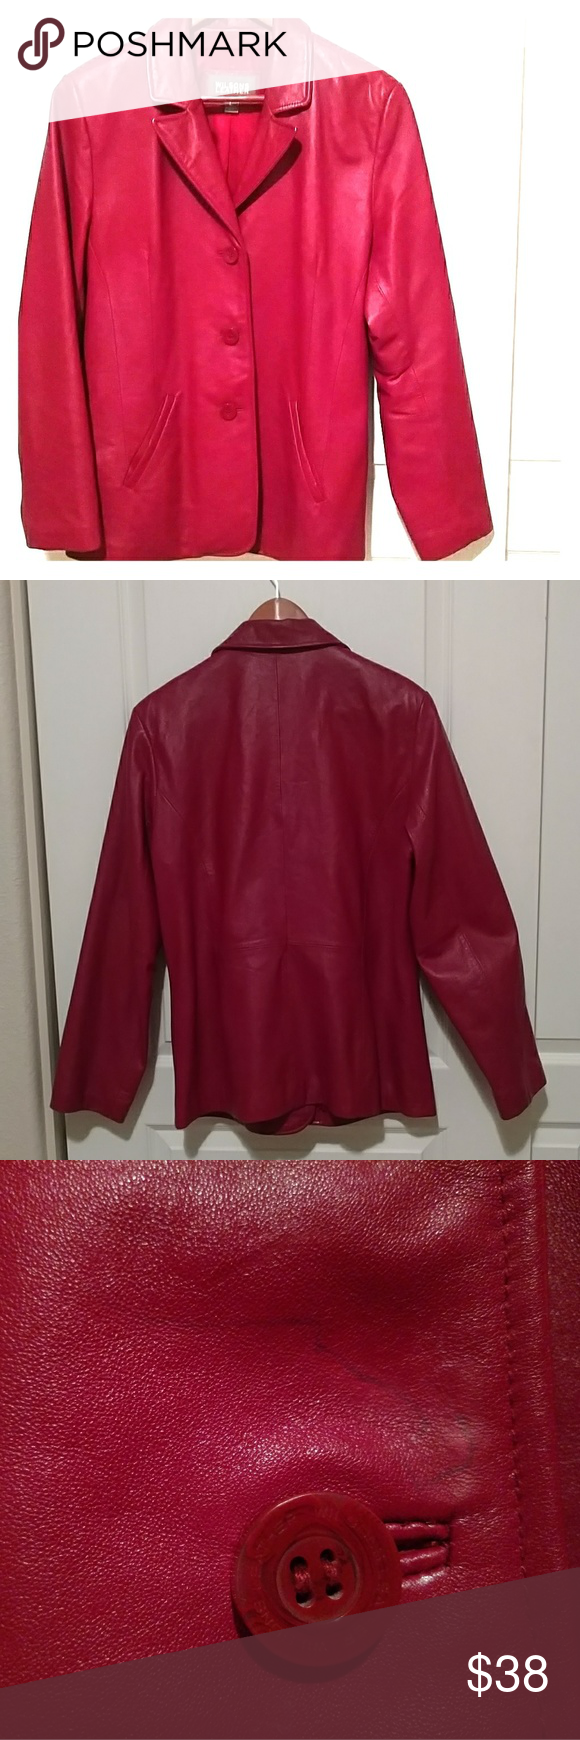 Wilsons Leather jacket, red Wilsons leather jacket